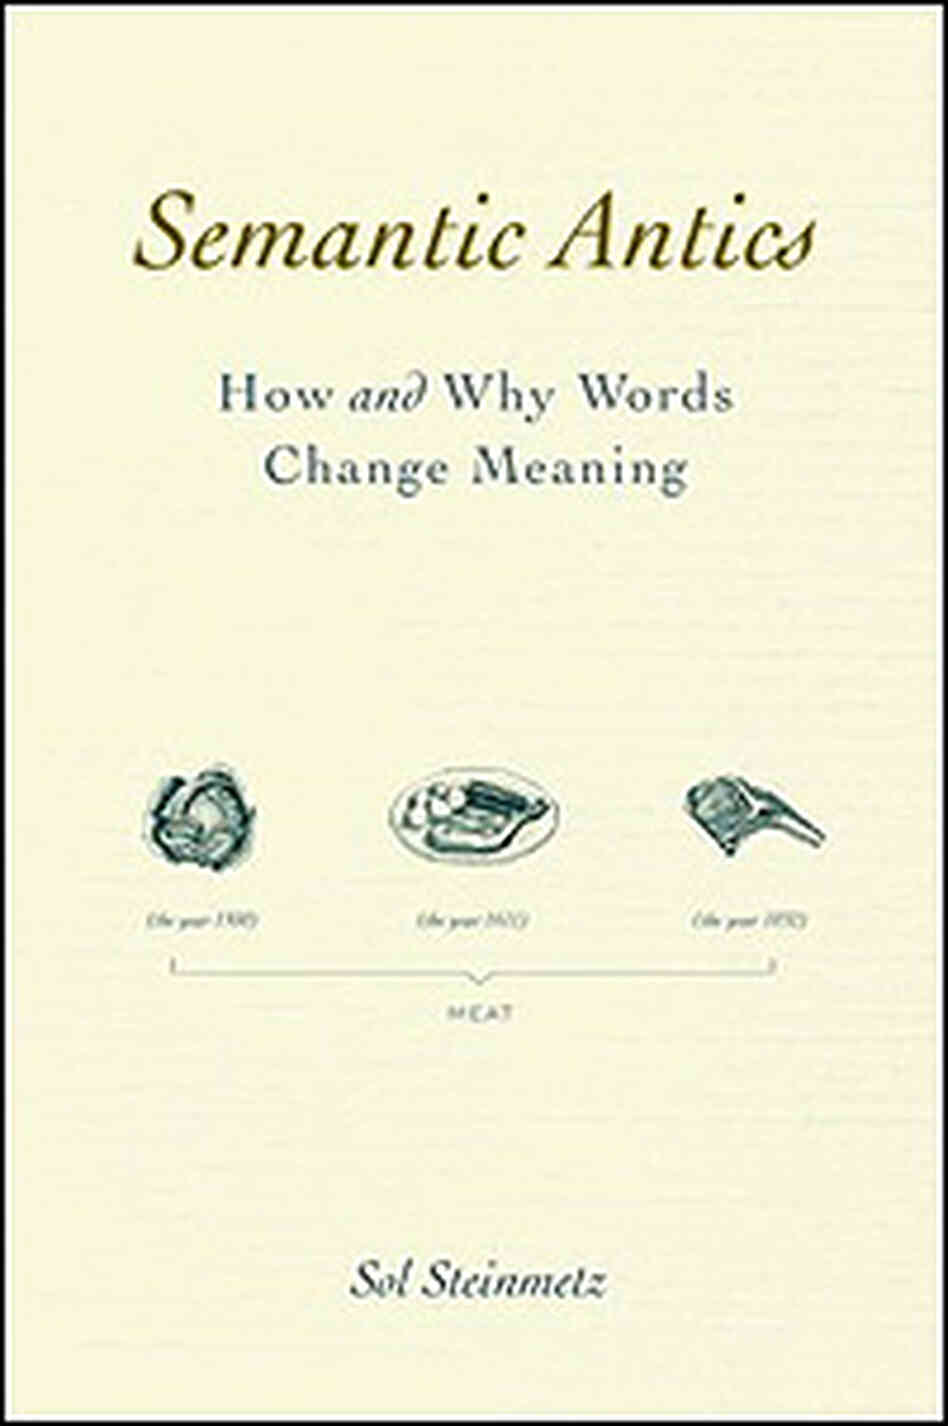 'Semantic Antics' book cover